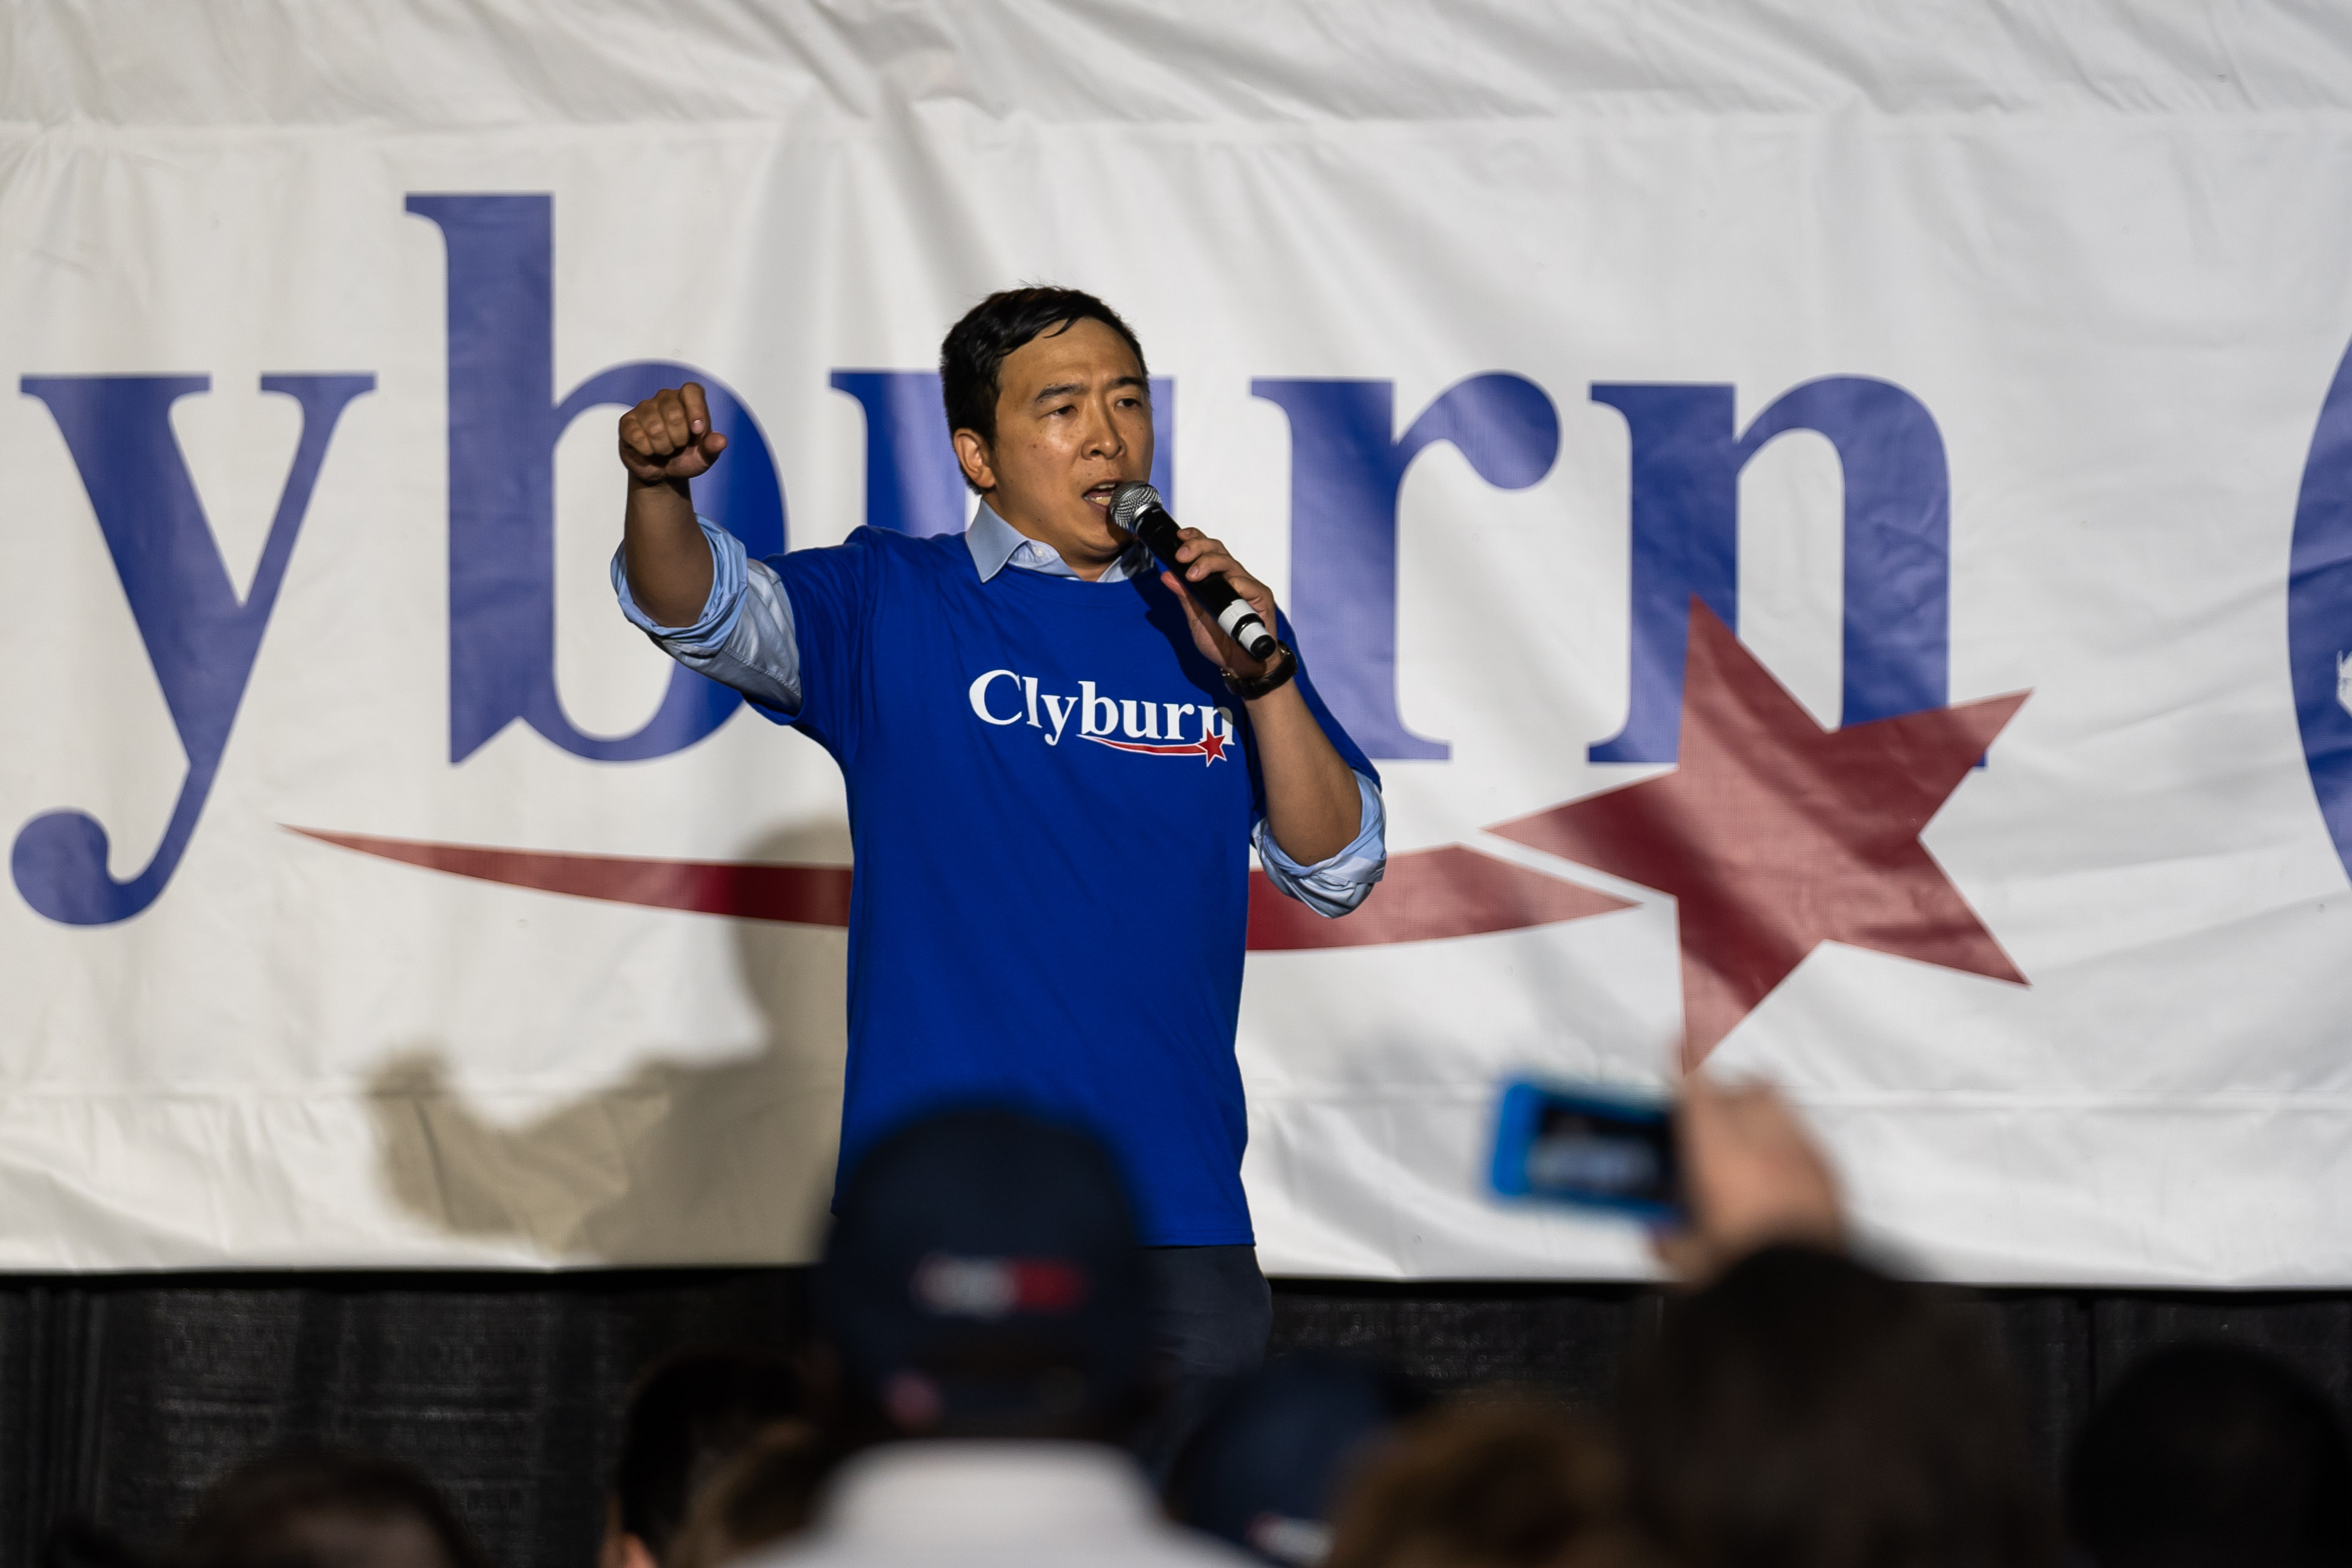 Andrew Yang delivers a speech on the stage of Rep. Clyburn's Fish Fry in South Carolina